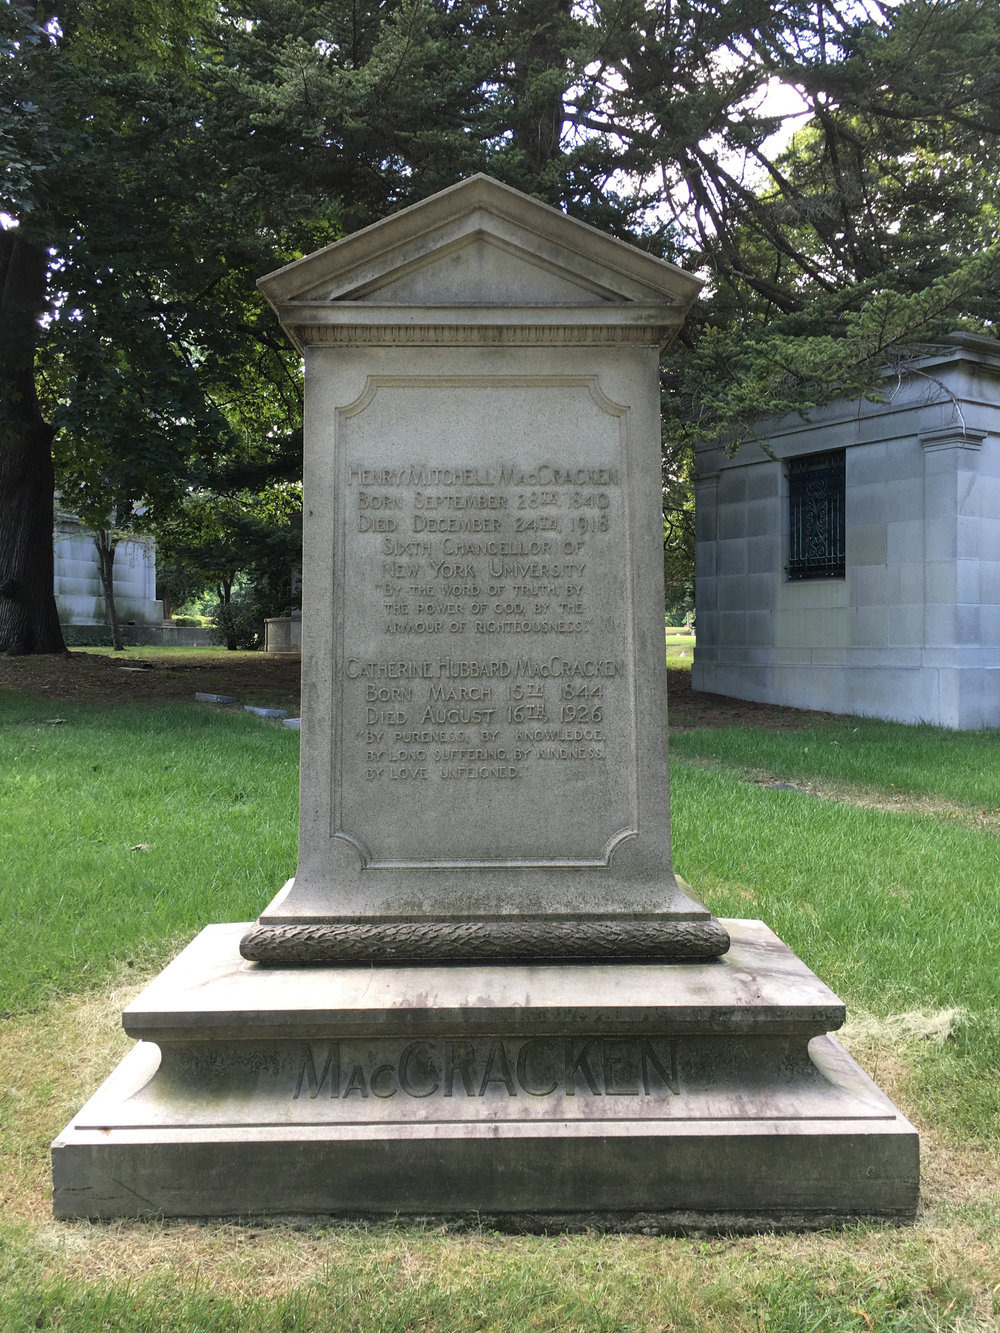 Henry Mitchell MacCracken is buried at Woodlawn Cemetery and Conservancy, Bronx, New York.